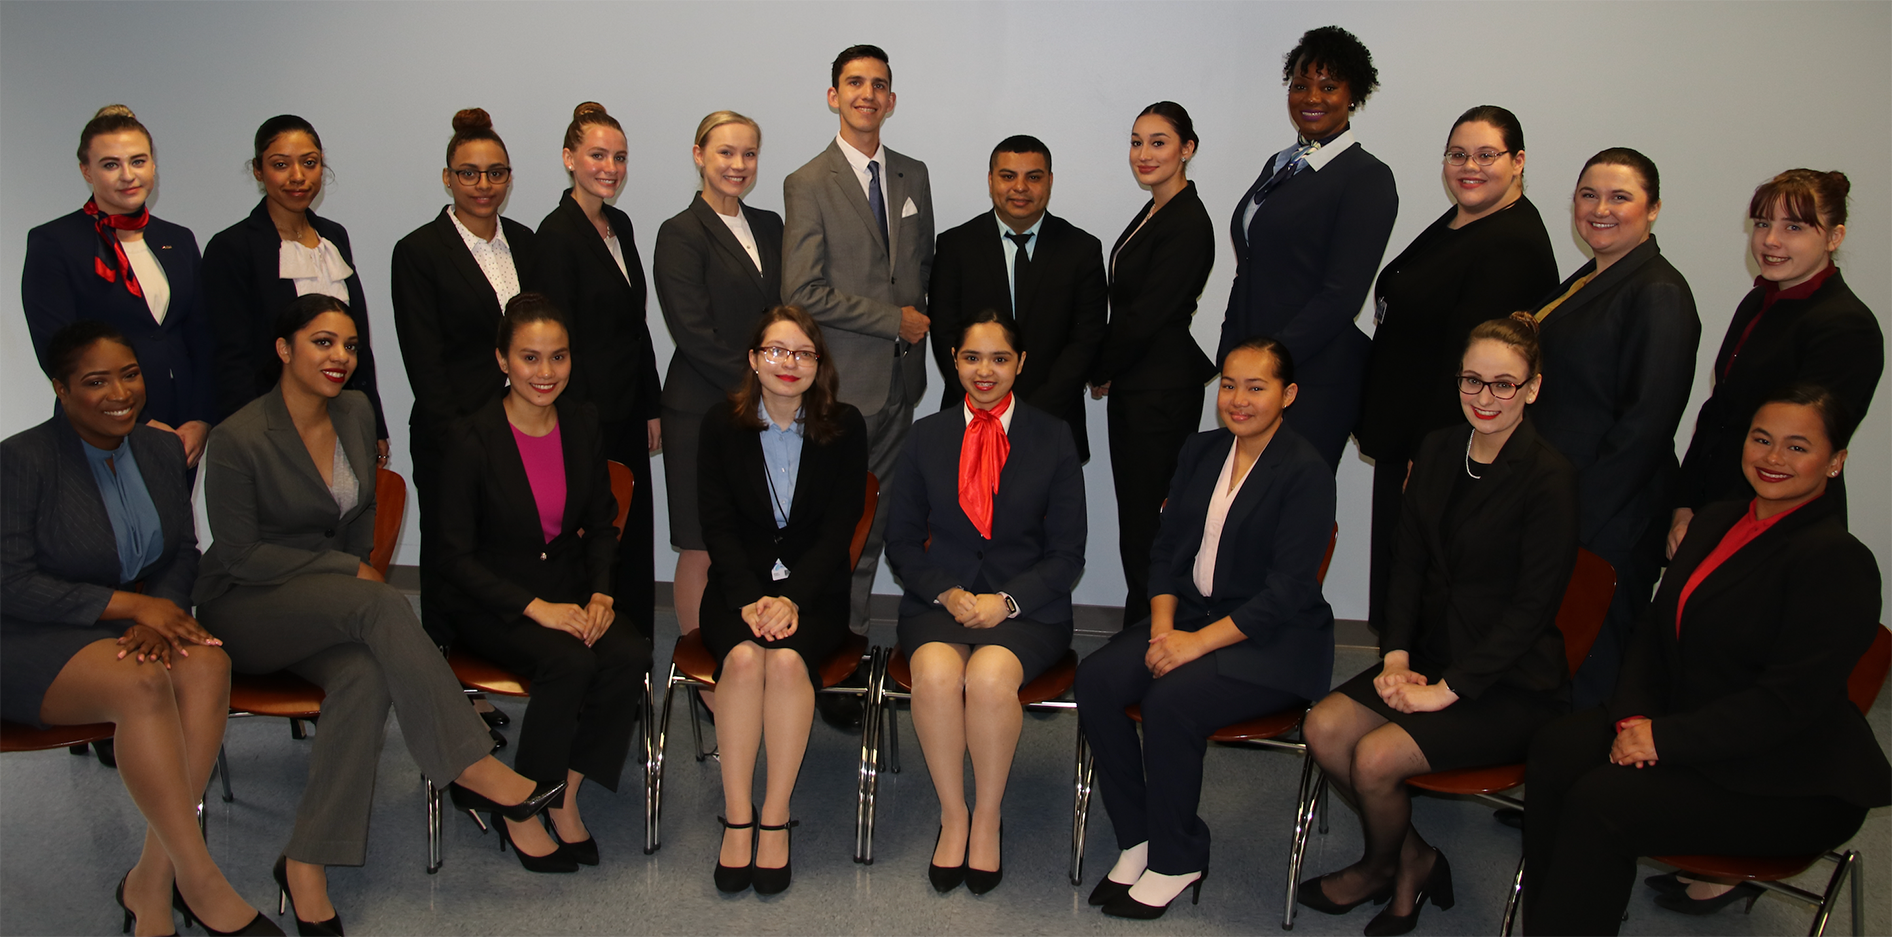 Unsure what to wear to a flight attendant interview? Get